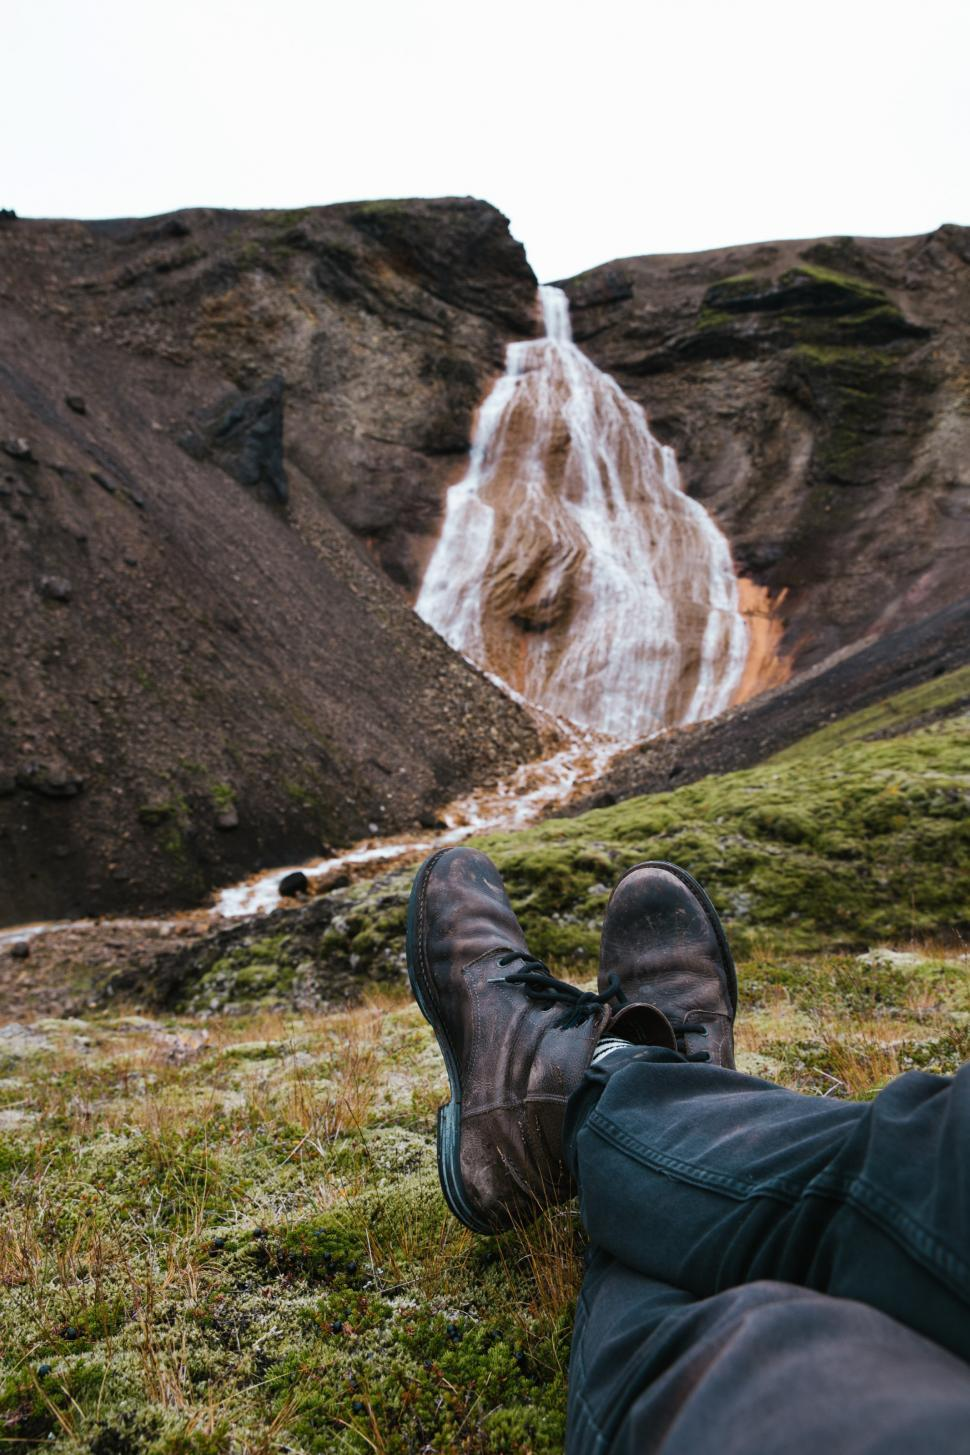 Download Free Stock HD Photo of Feet relaxing on moss grown rock Online